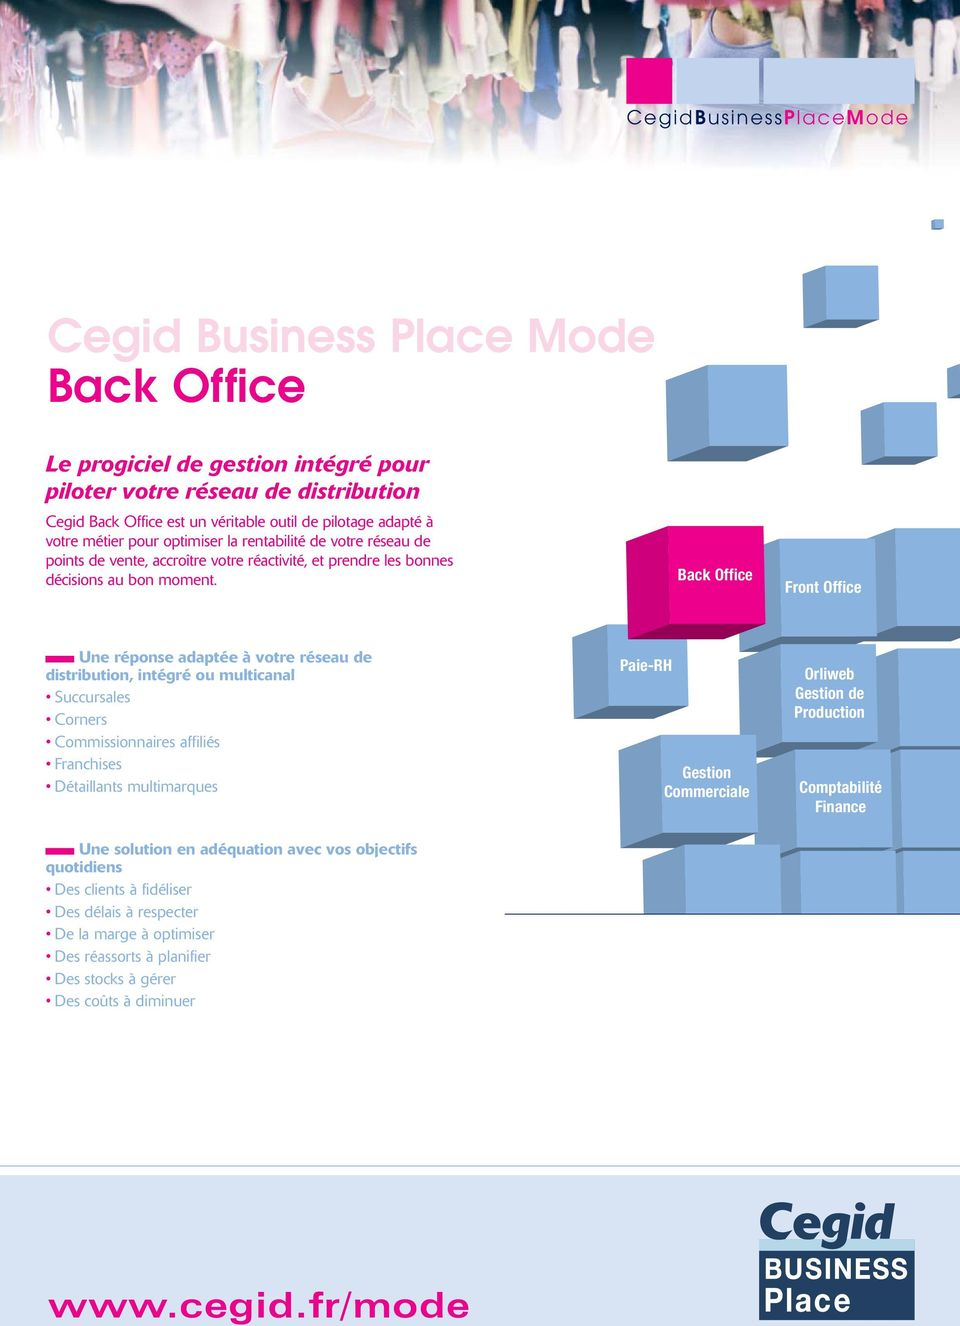 Back Office Front Office Une réponse adaptée à votre réseau de distribution, intégré ou multicanal Succursales Corners Commissionnaires affiliés Franchises Détaillants multimarques Une solution en